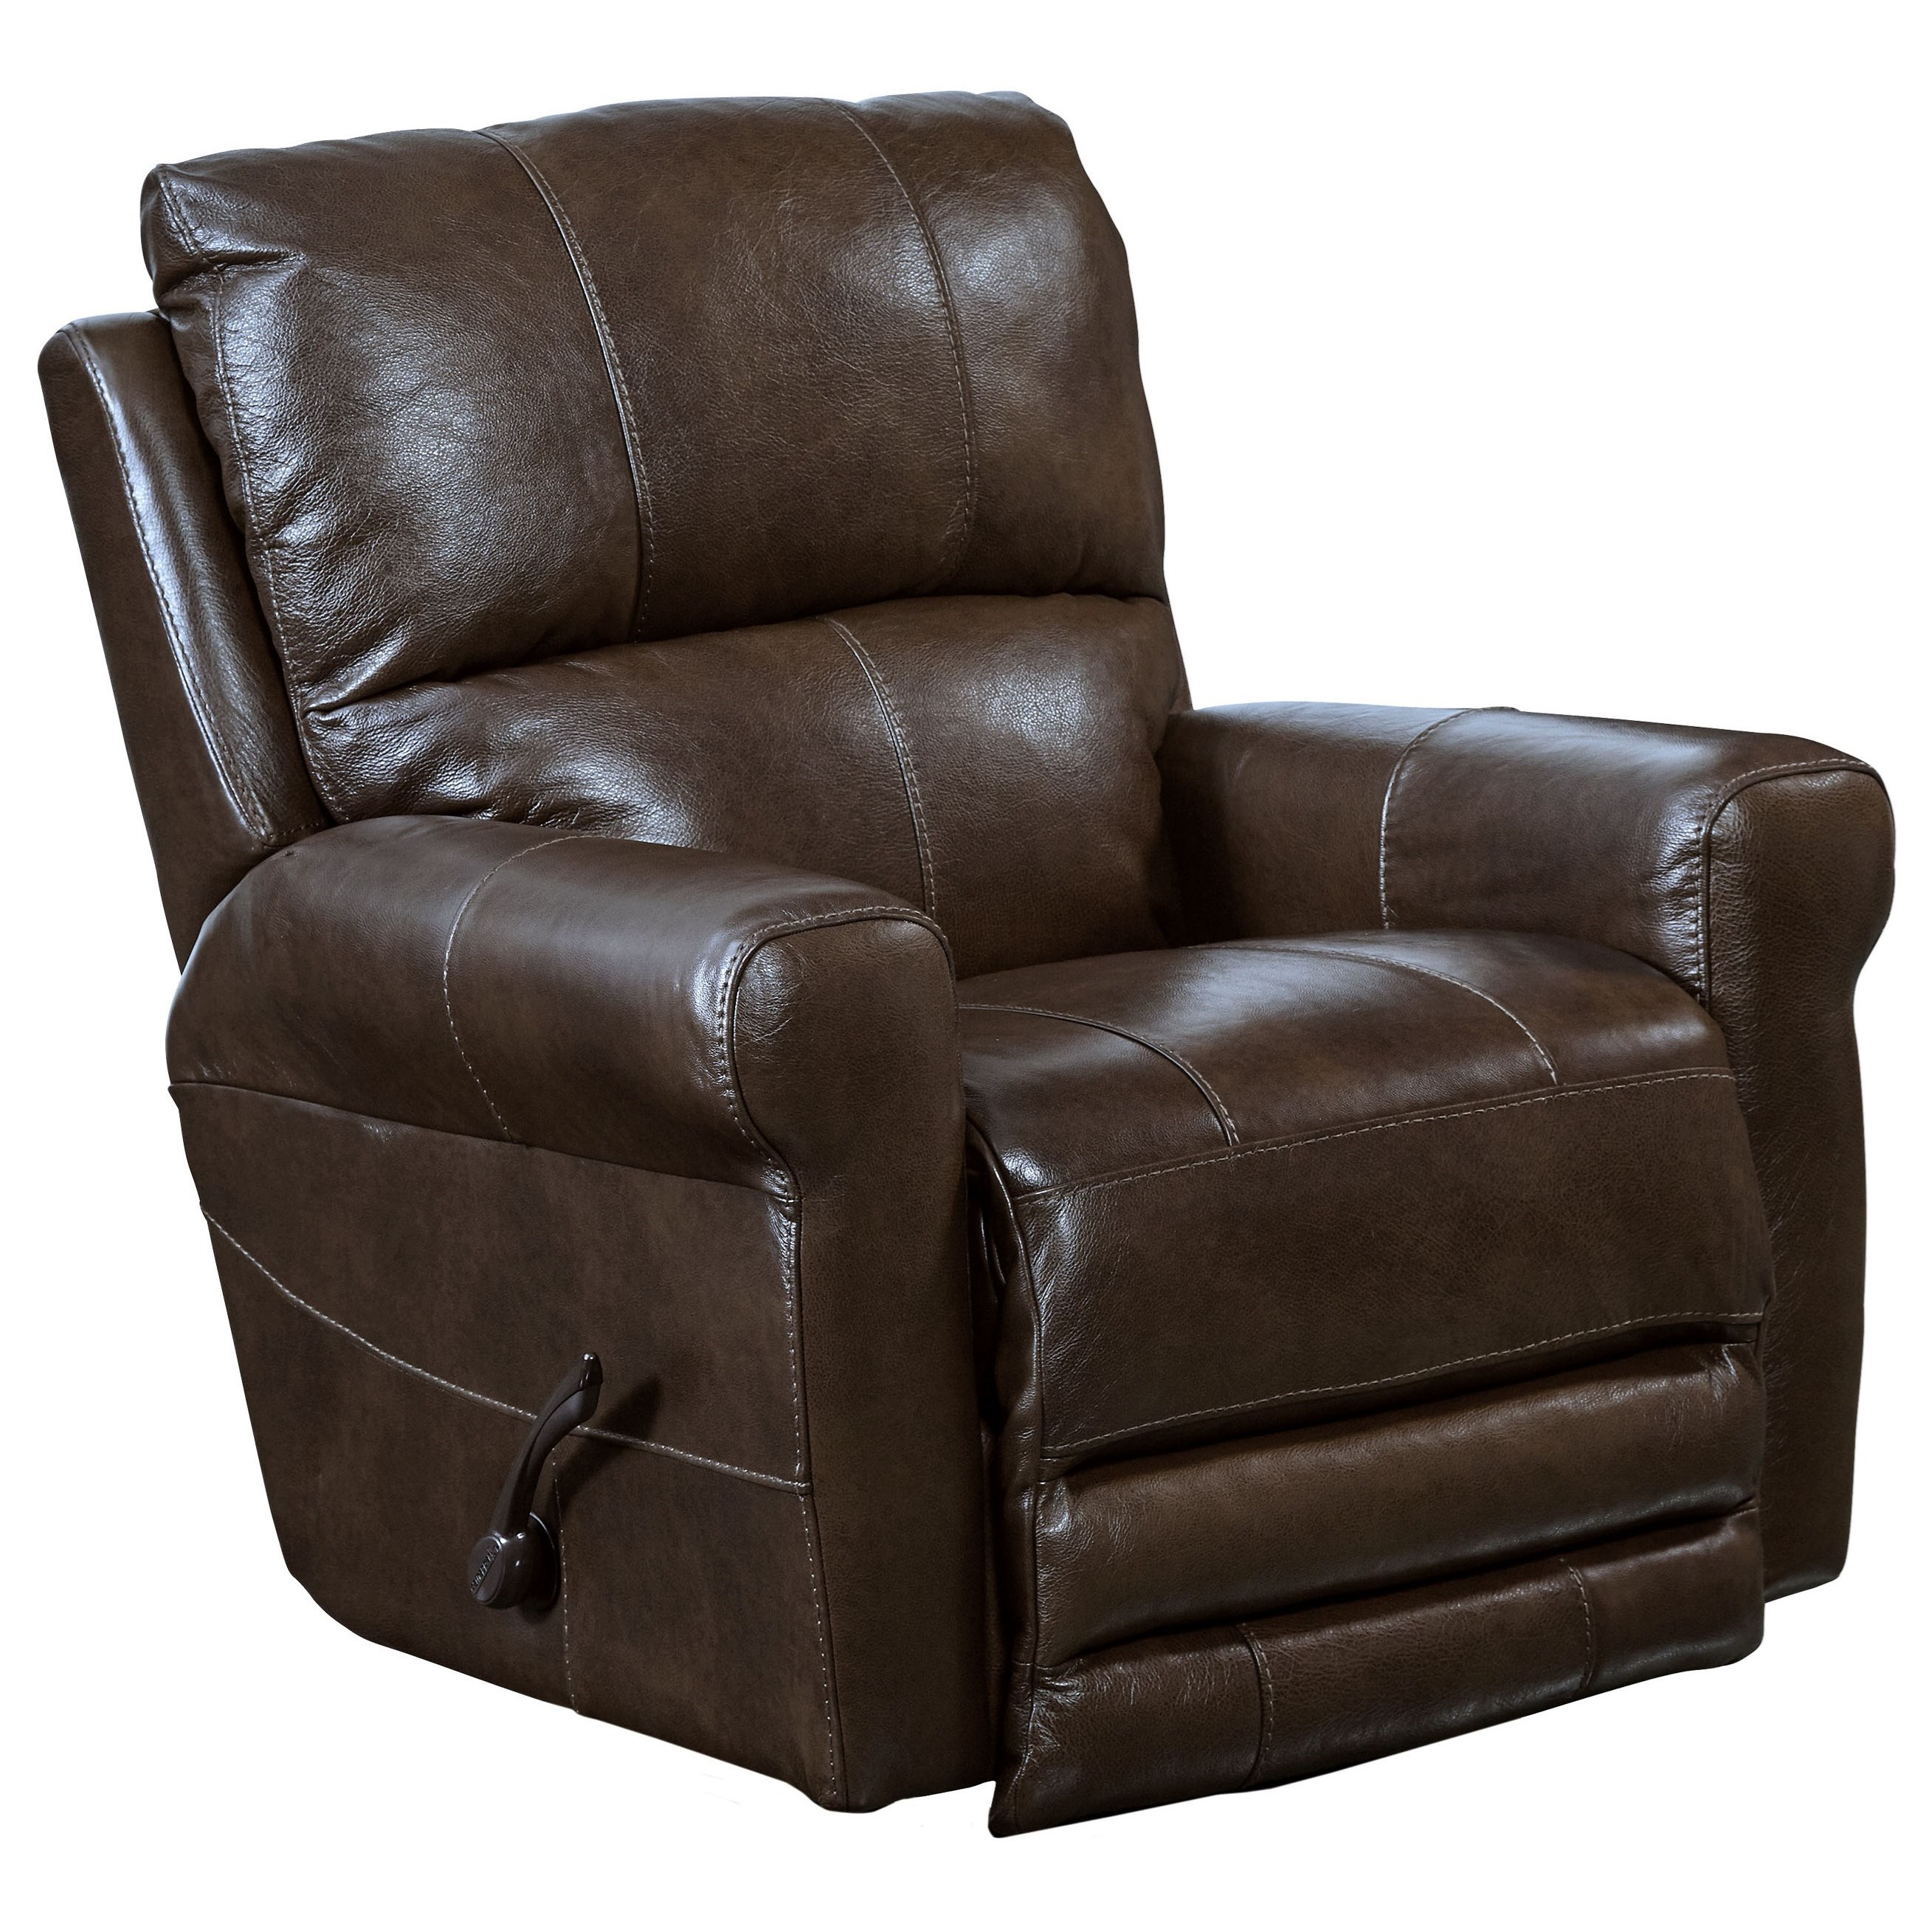 Hoffner Swivel Glider Recliner by Catnapper at Northeast Factory Direct